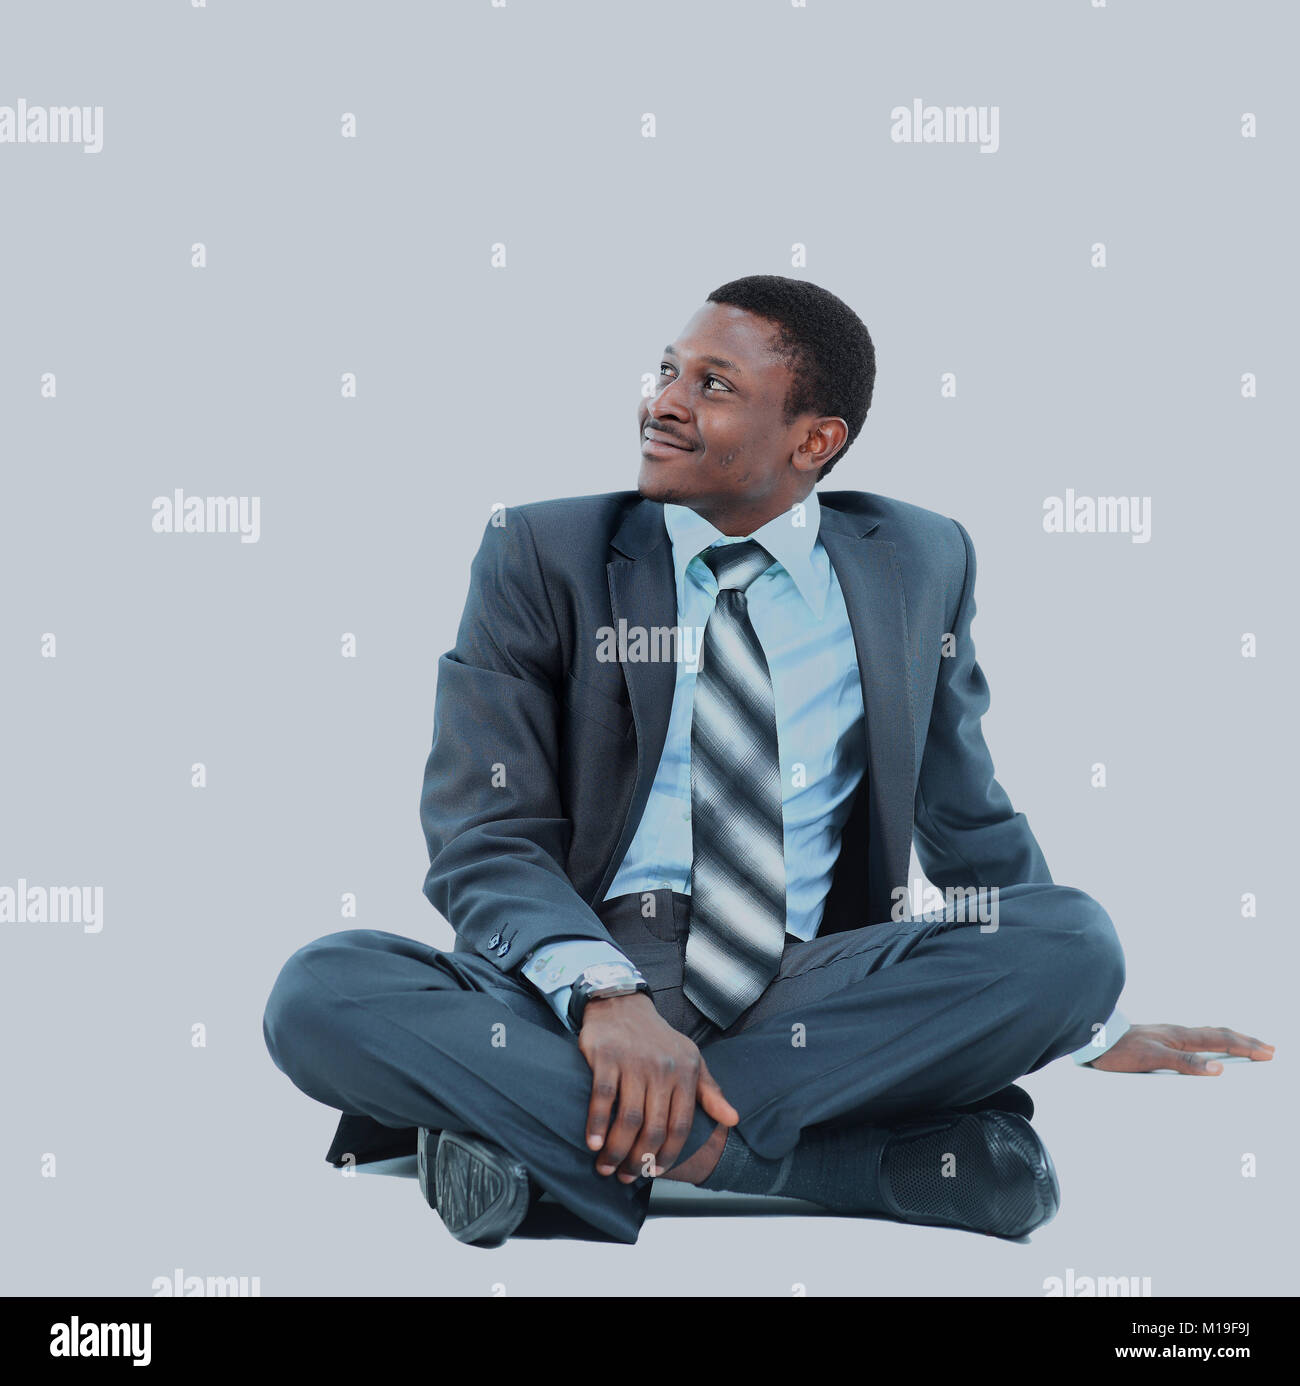 afro-american businessman relaxing - Stock Image